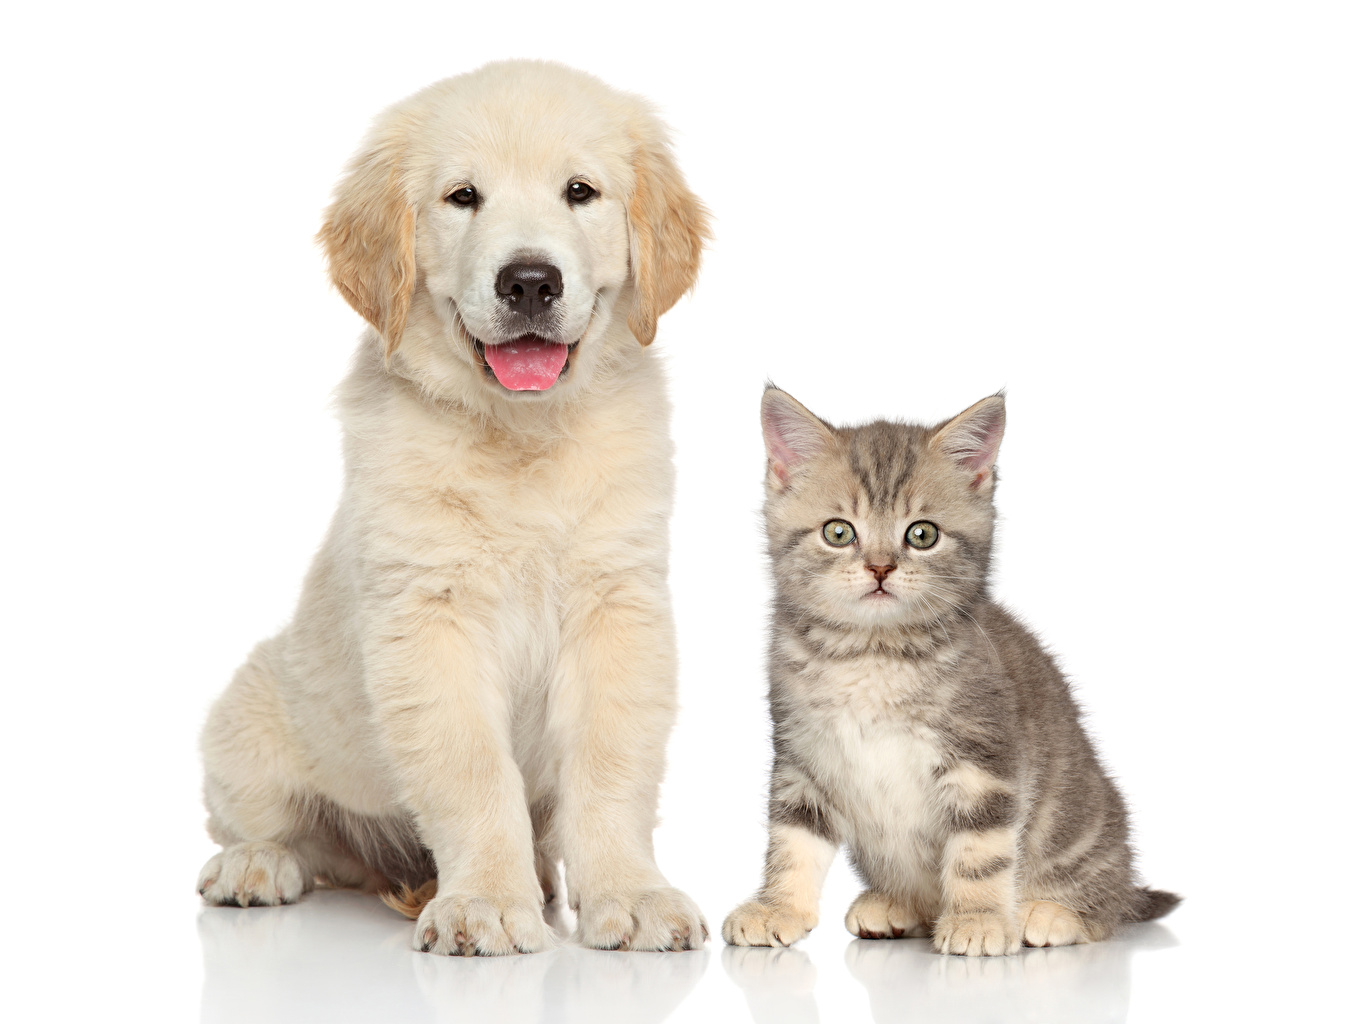 Image puppies Retriever kitty cat cat Dogs Two animal White background Puppy Kittens dog Cats 2 Animals